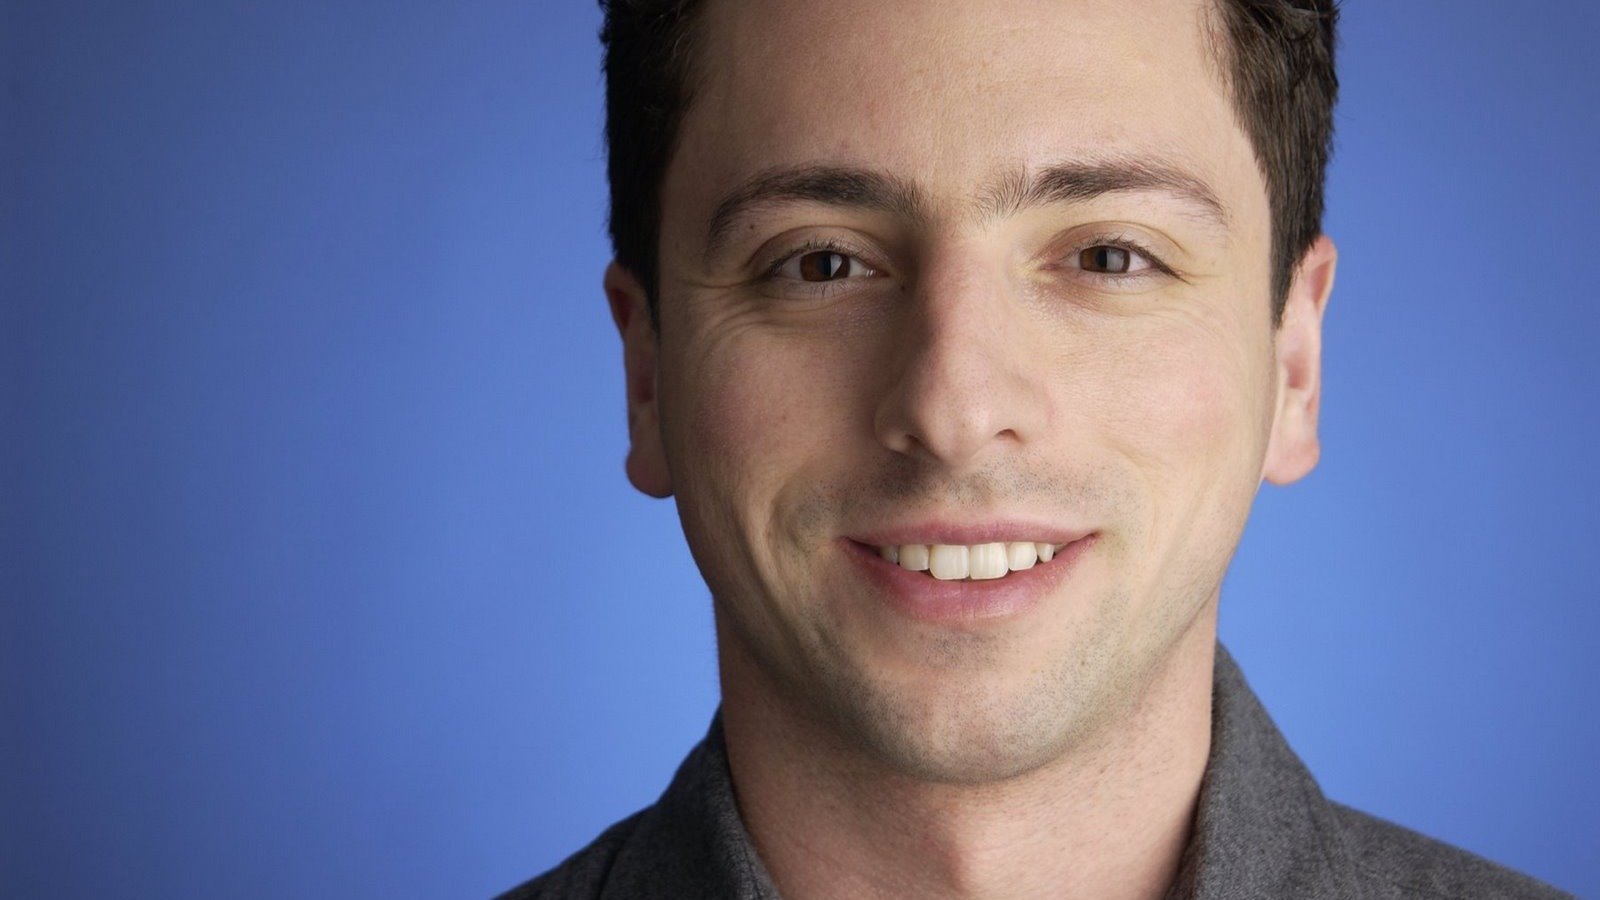 Facebook China and Iran are web freedom threats says Sergey Brin 1600x900